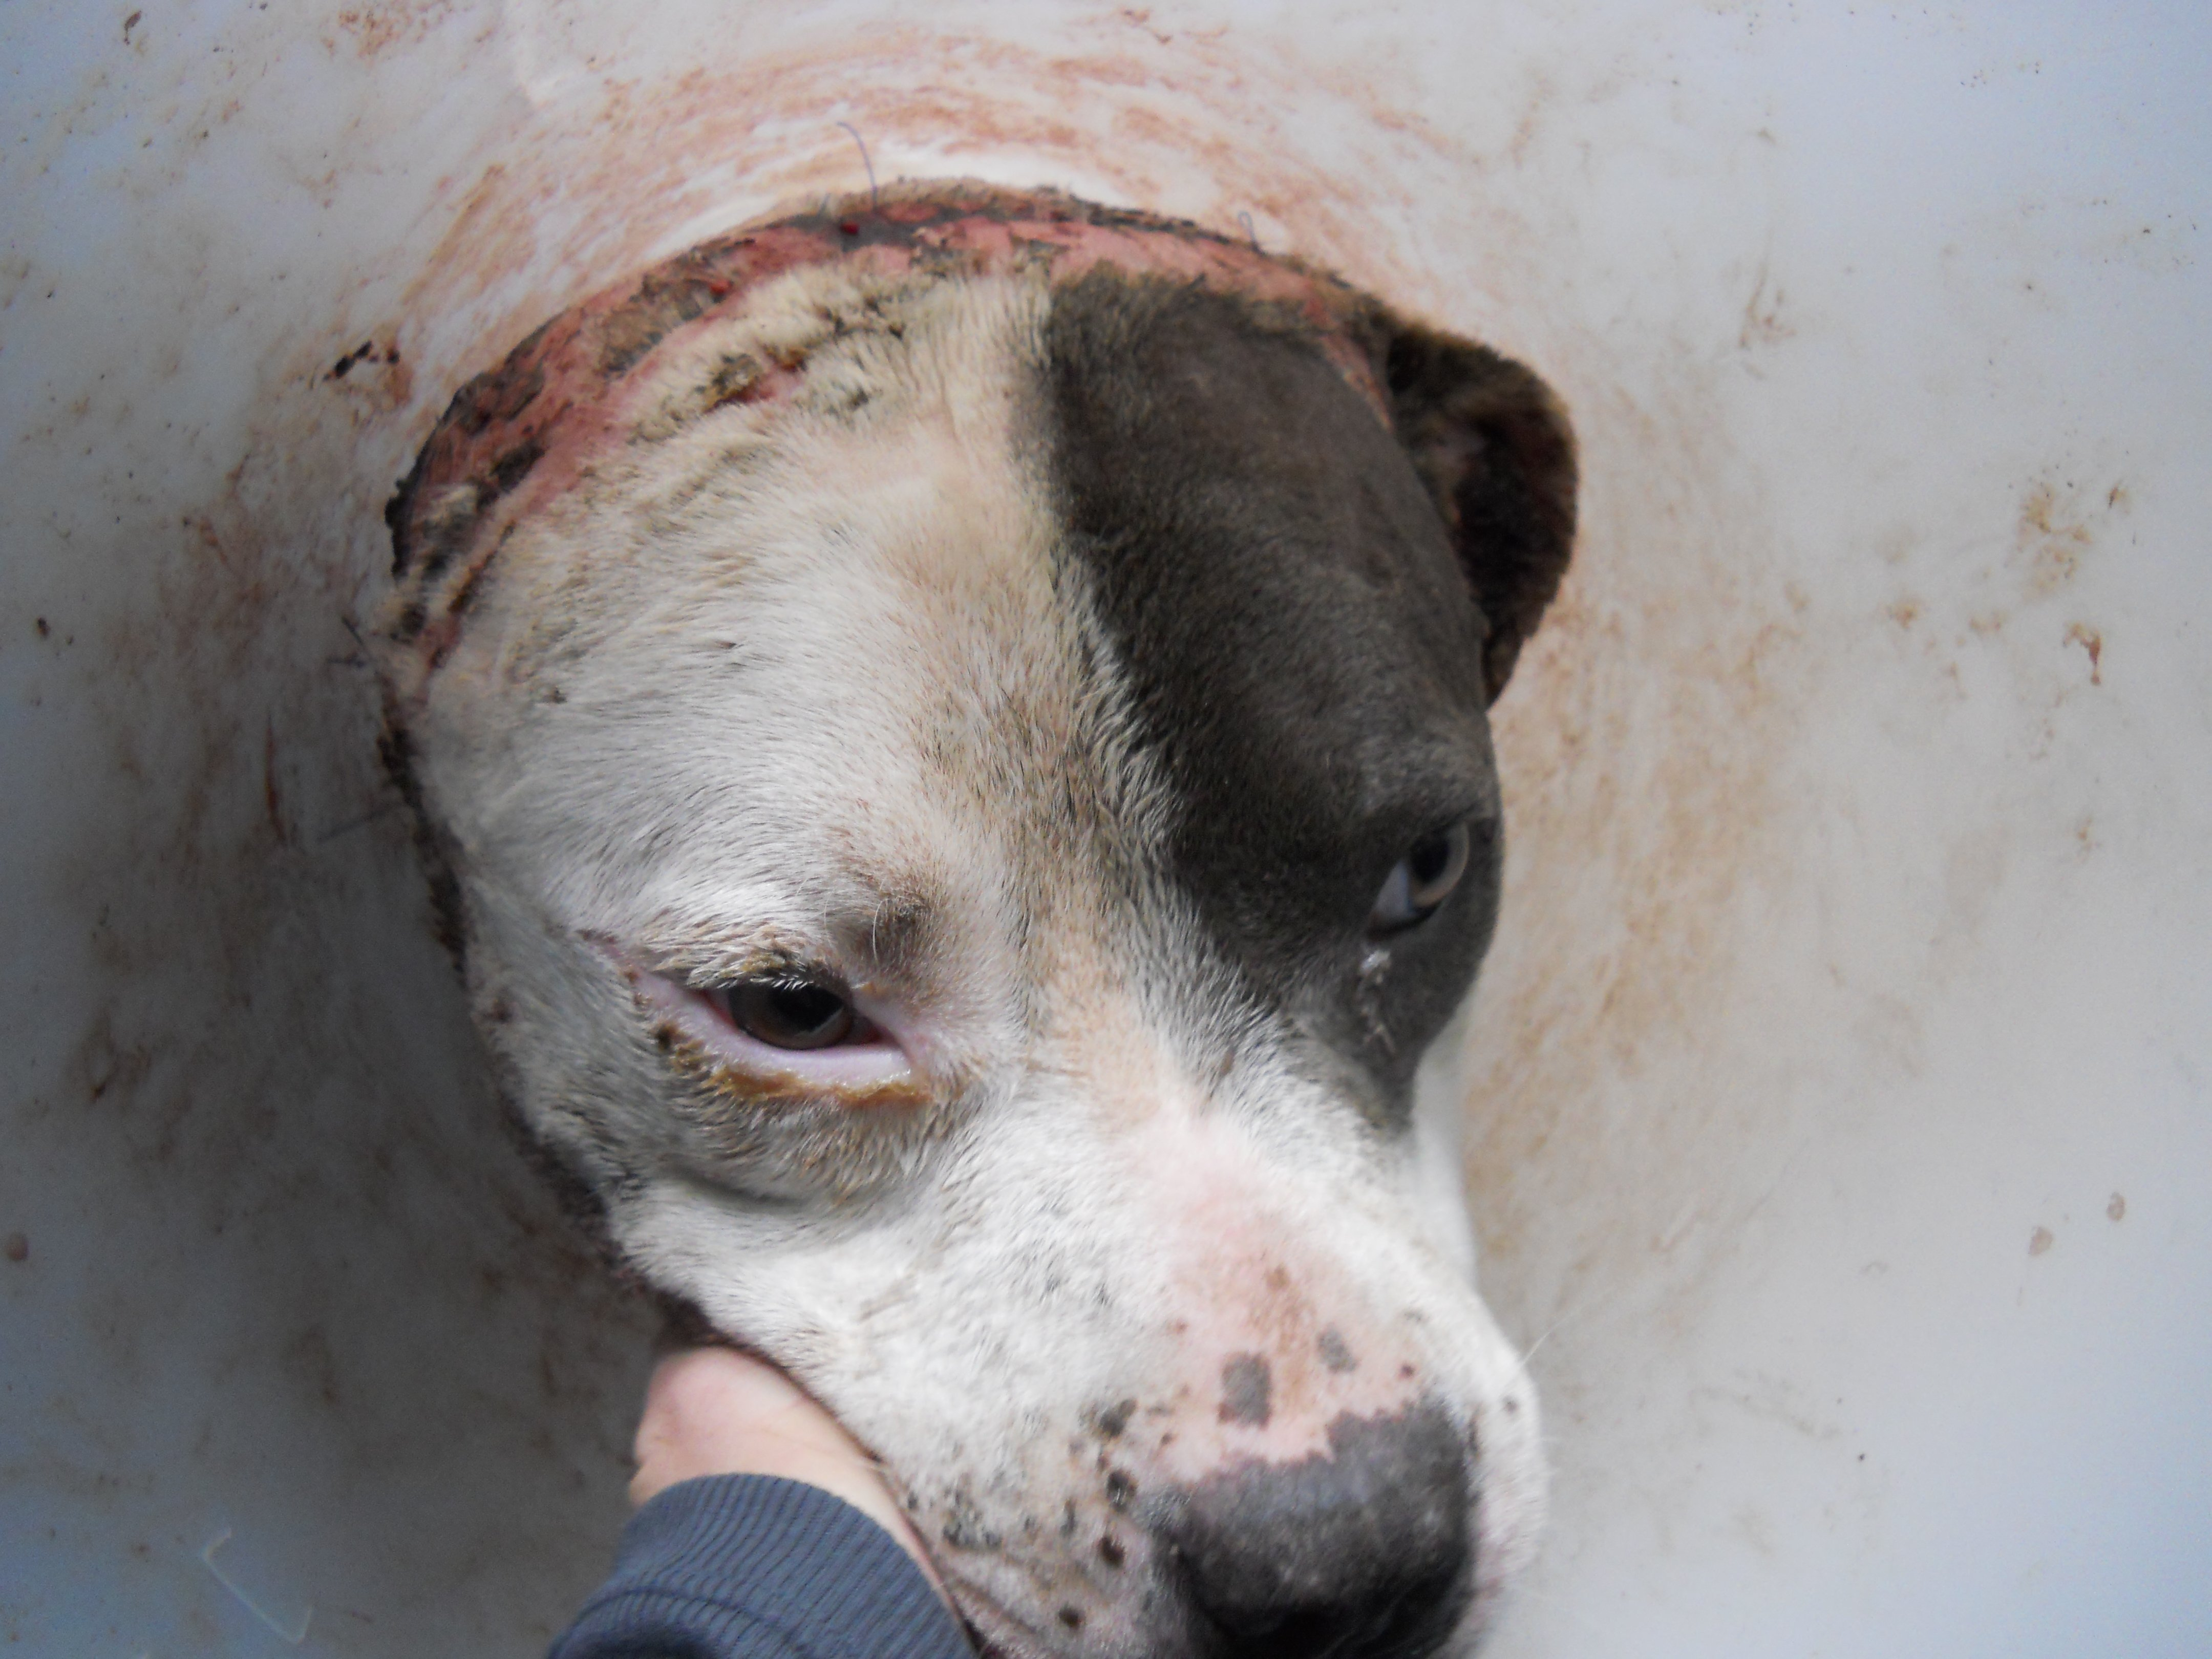 *GRAPHIC* (Source: Maricopa County Animal Care and Control)